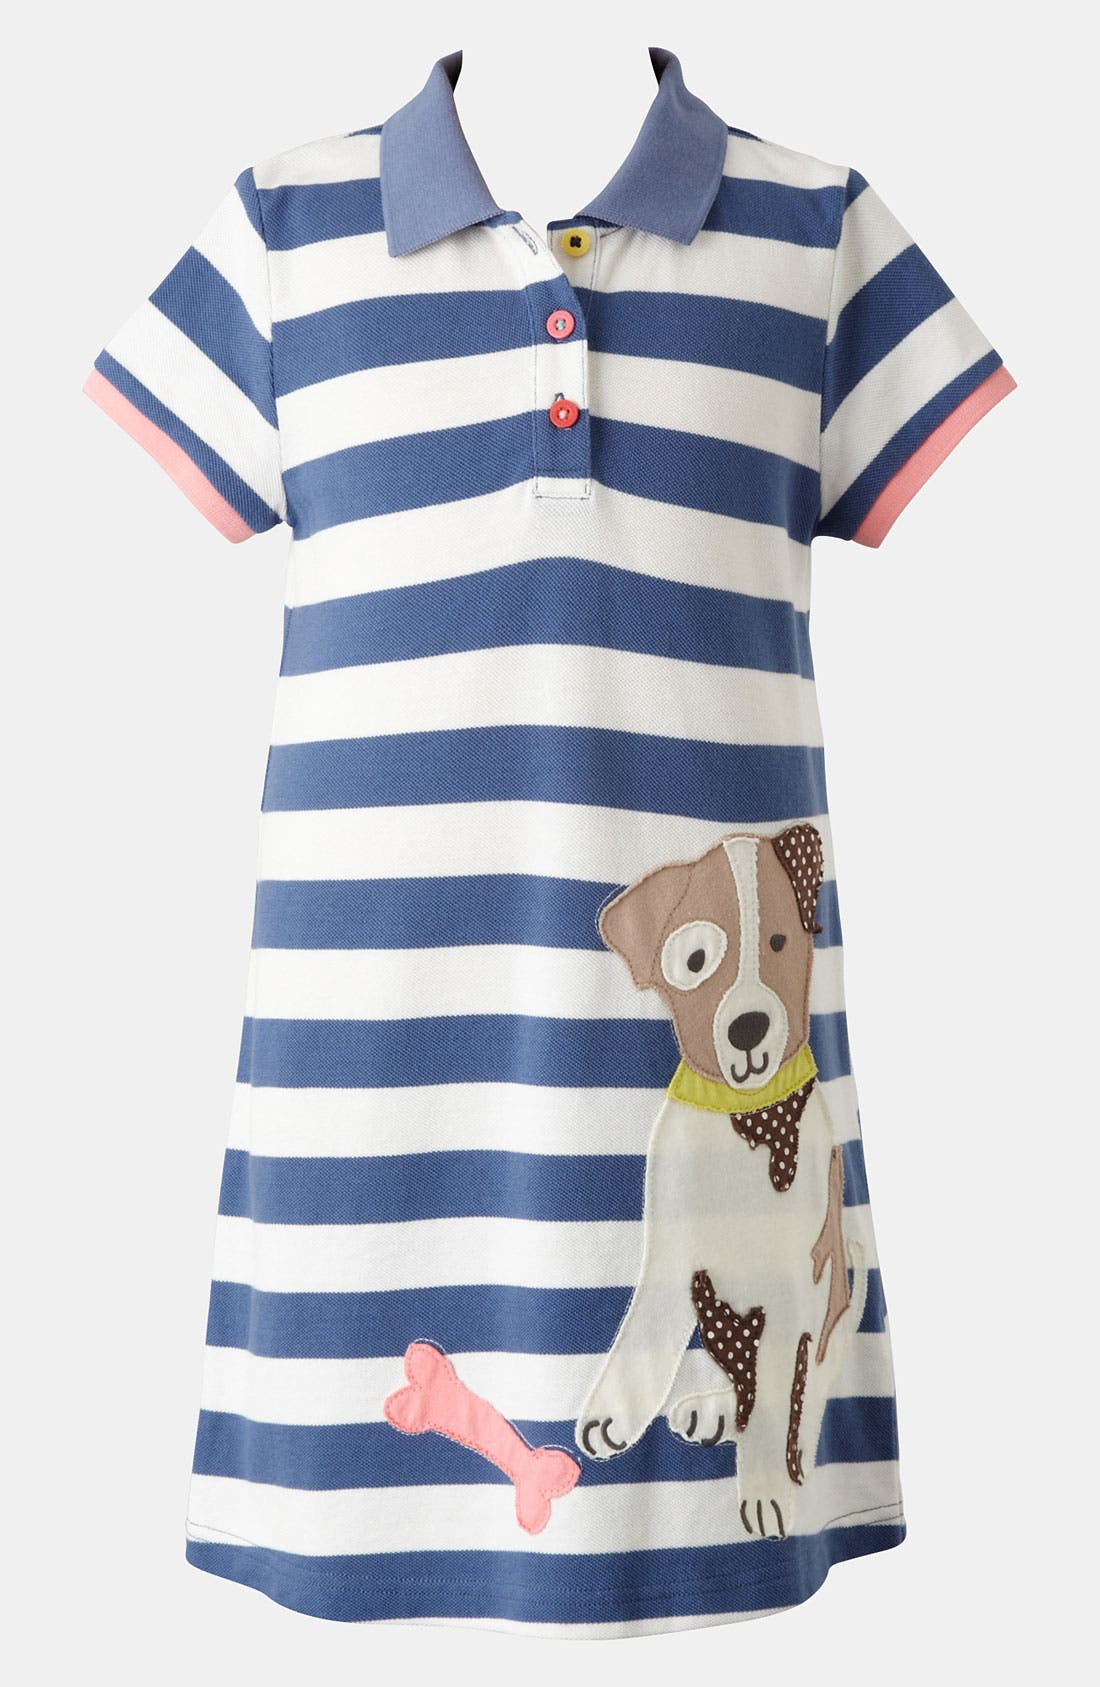 Alternate Image 1 Selected - Mini Boden 'Fun' Appliqué Polo Dress (Toddler, Little Girls & Big Girls)